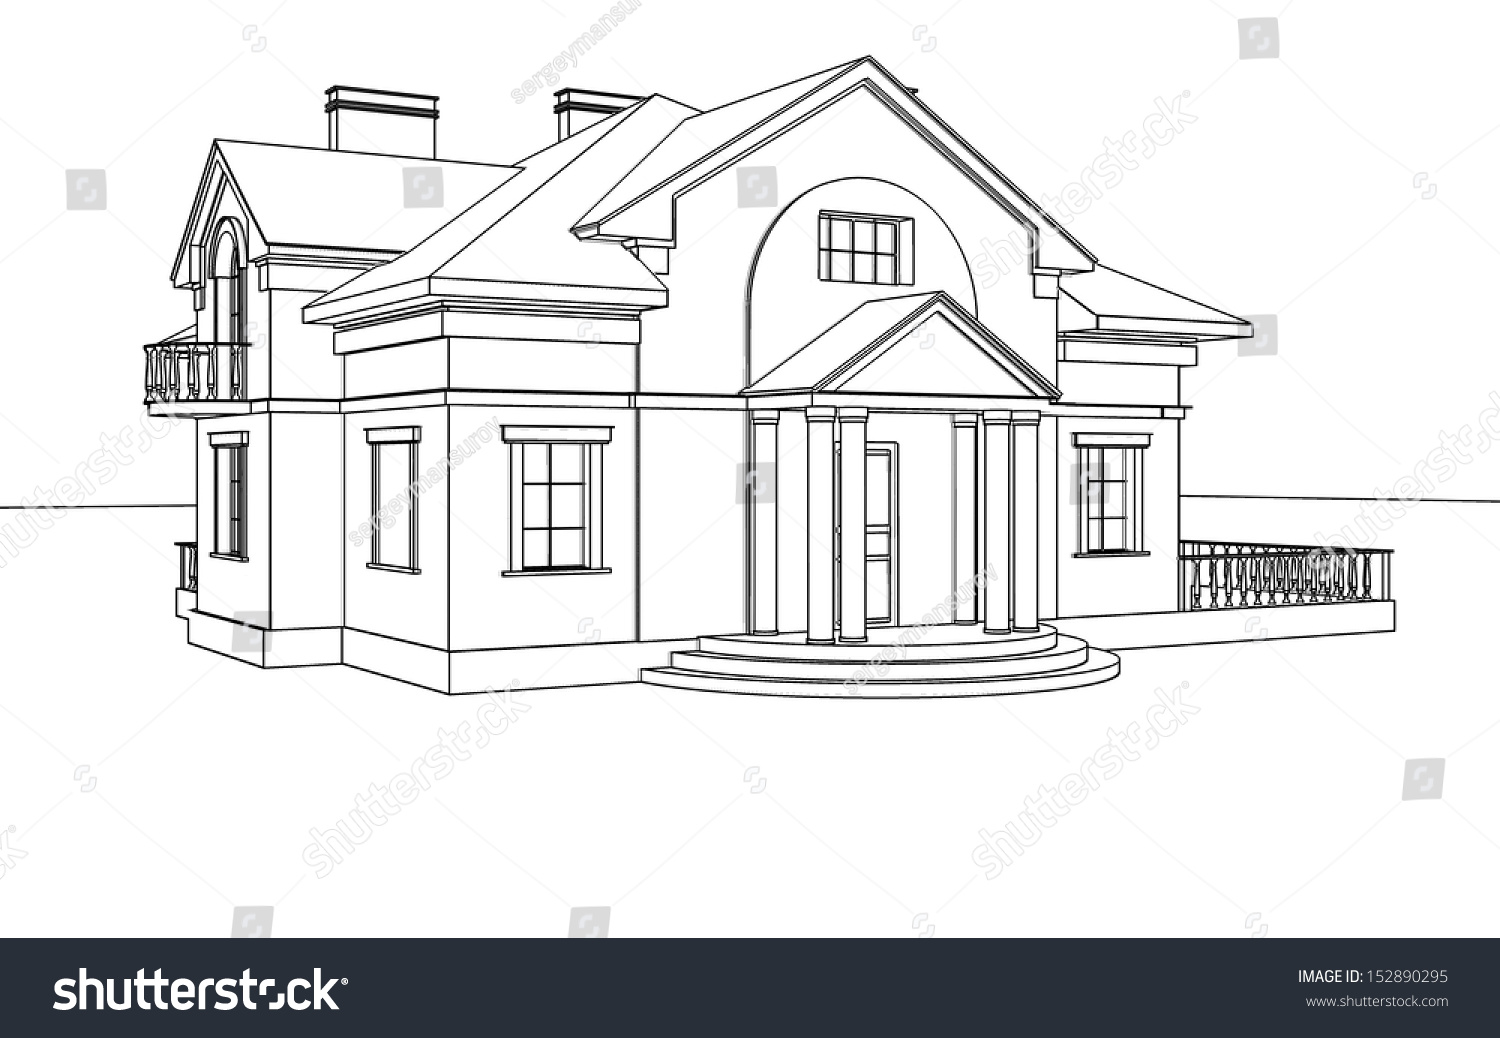 Drawing sketch house stock illustration 152890295 shutterstock Draw your house